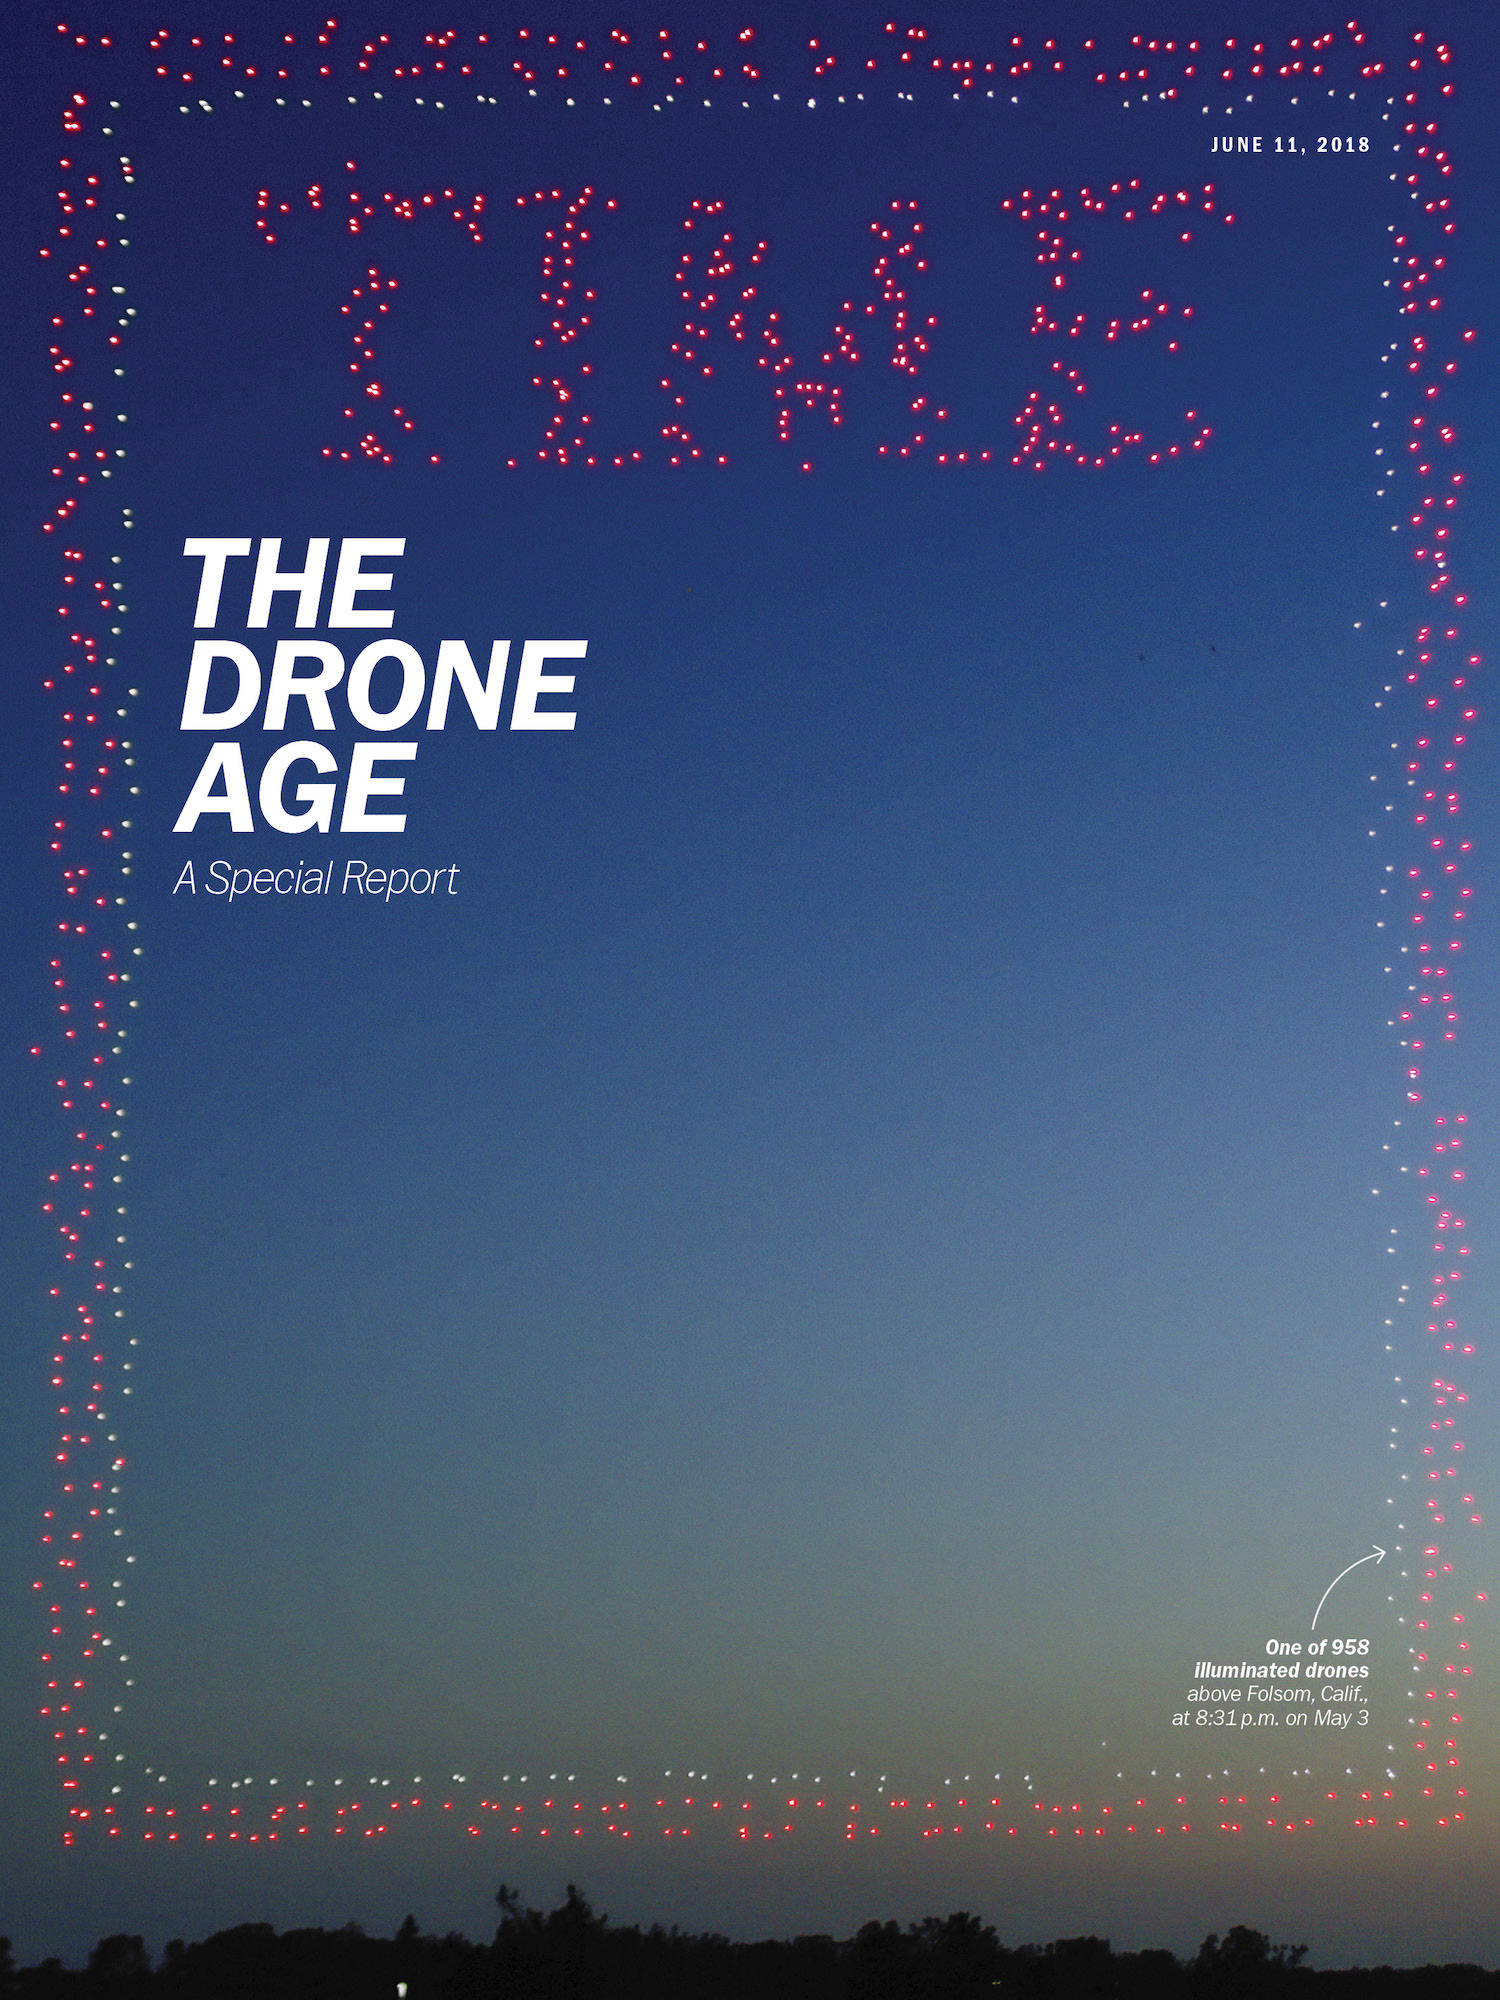 Check out this cover of TIME Magazine - The drone age is here!